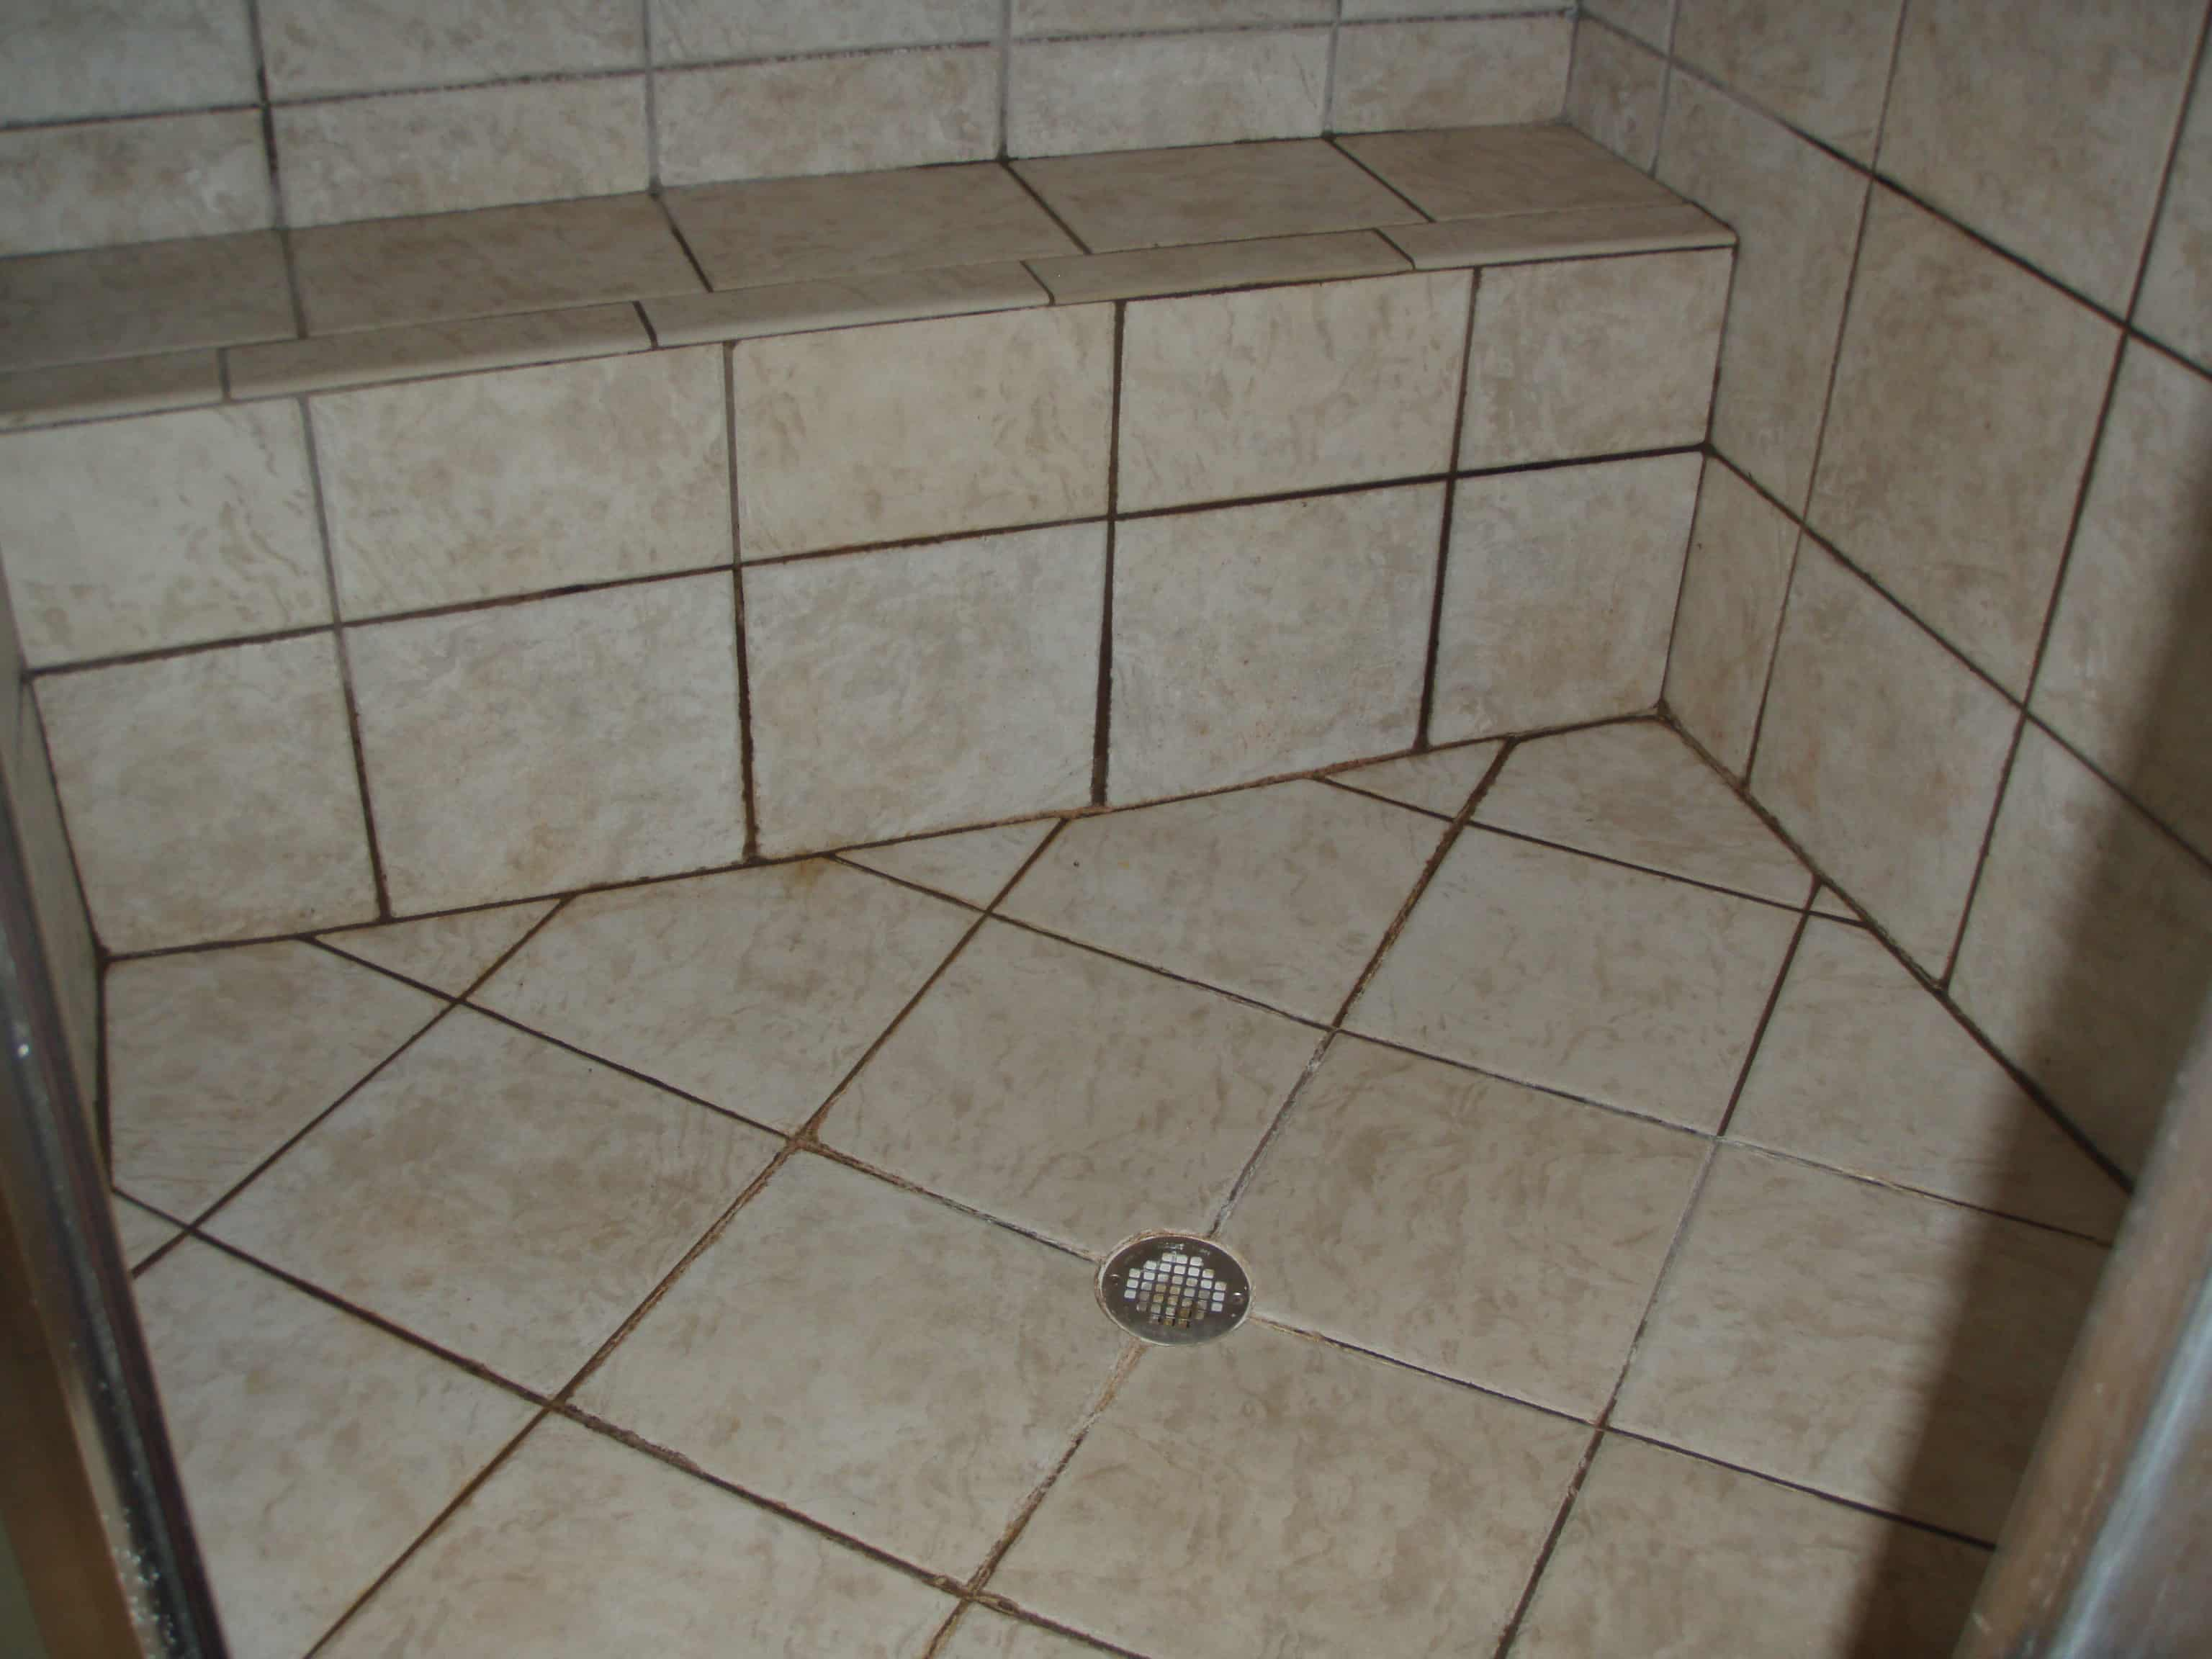 Tile And Grout Cleaning Cape Cod.   DryServ